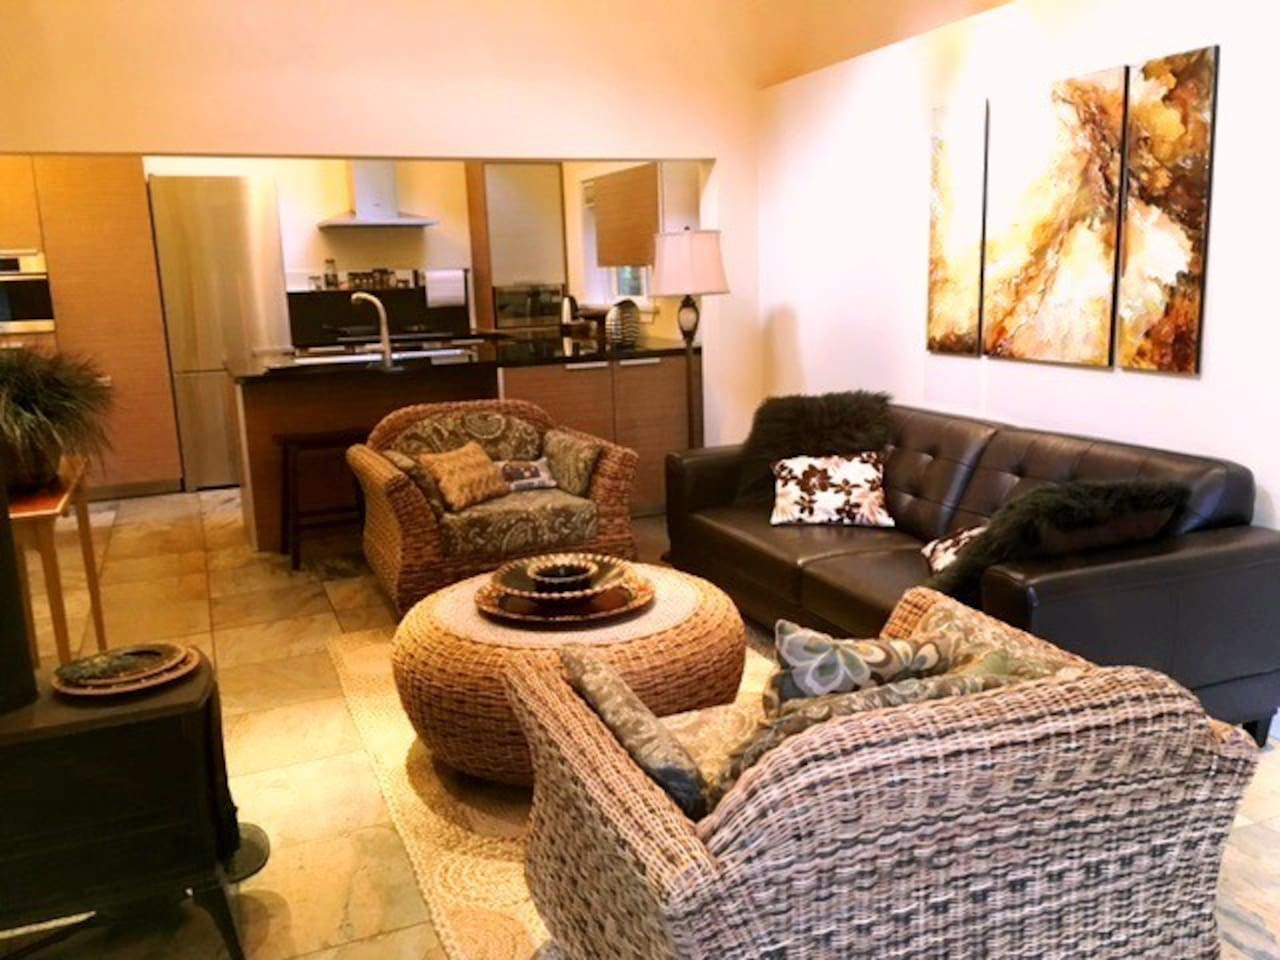 High ceilings, comfortable furnishings and heated tiles in living space.